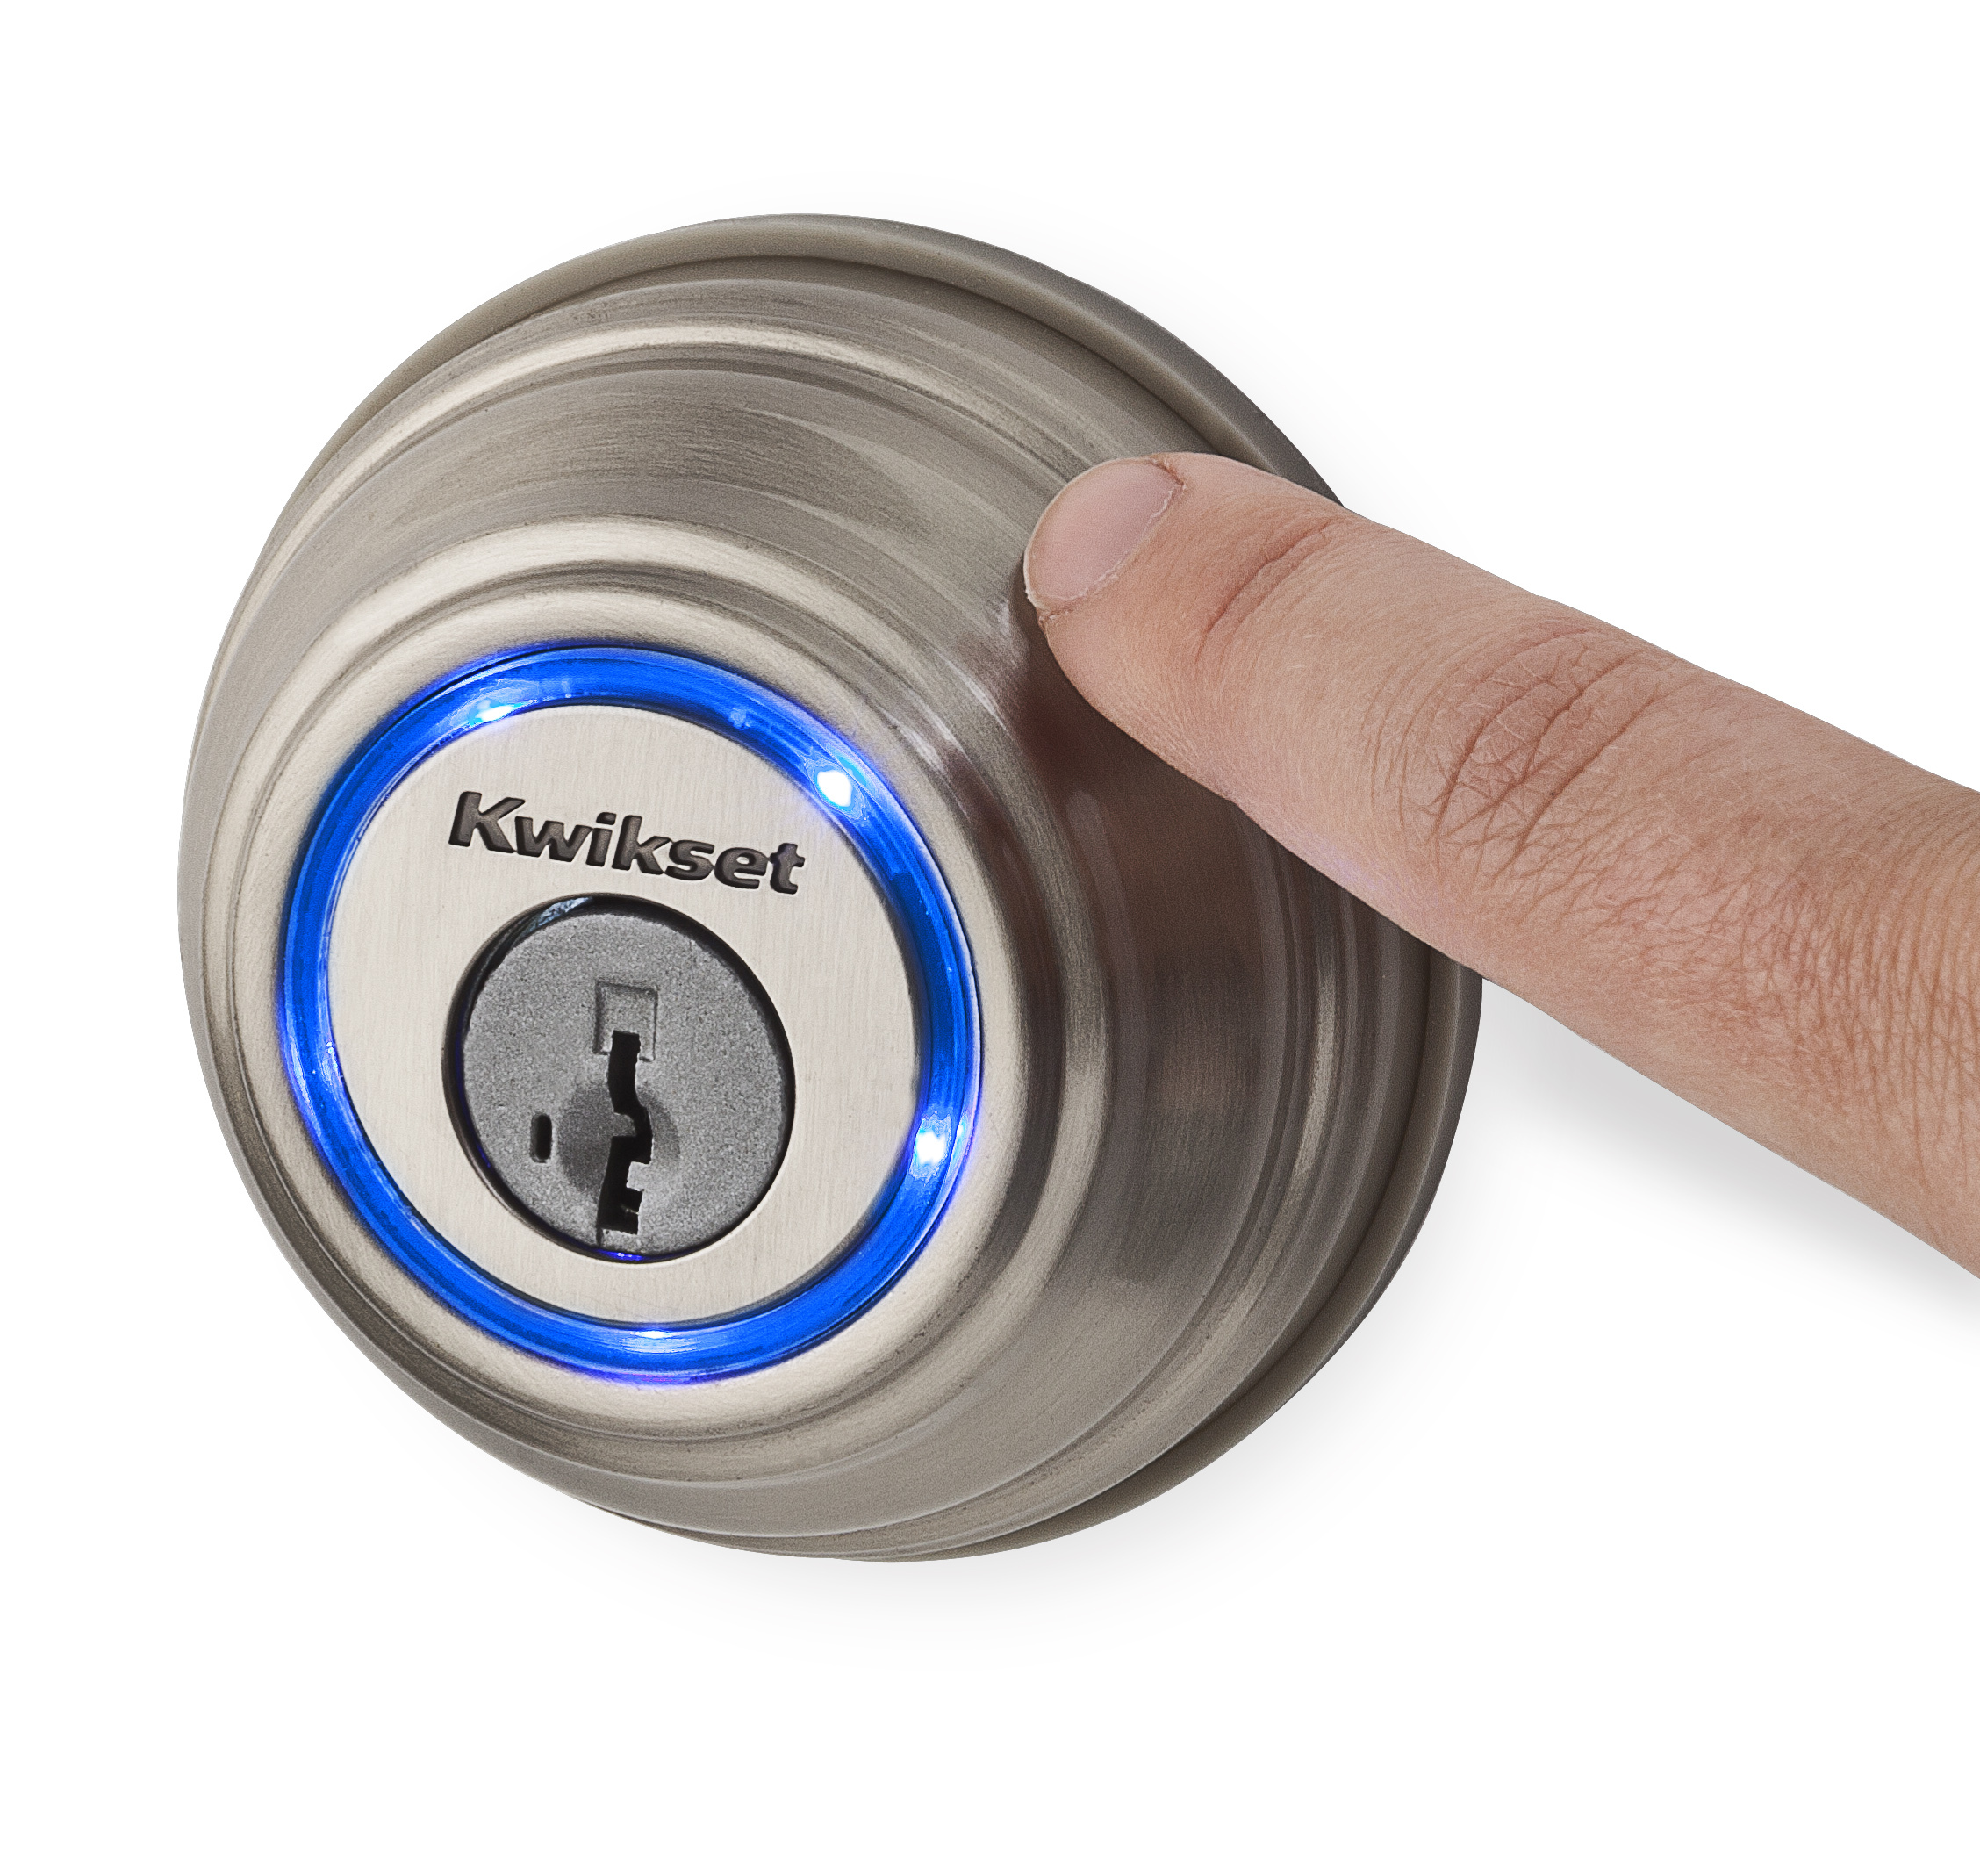 Kevo is the first deadbolt intelligent enough to communicate with a smartphone and unlock with a simple touch. (Photo: Business Wire)